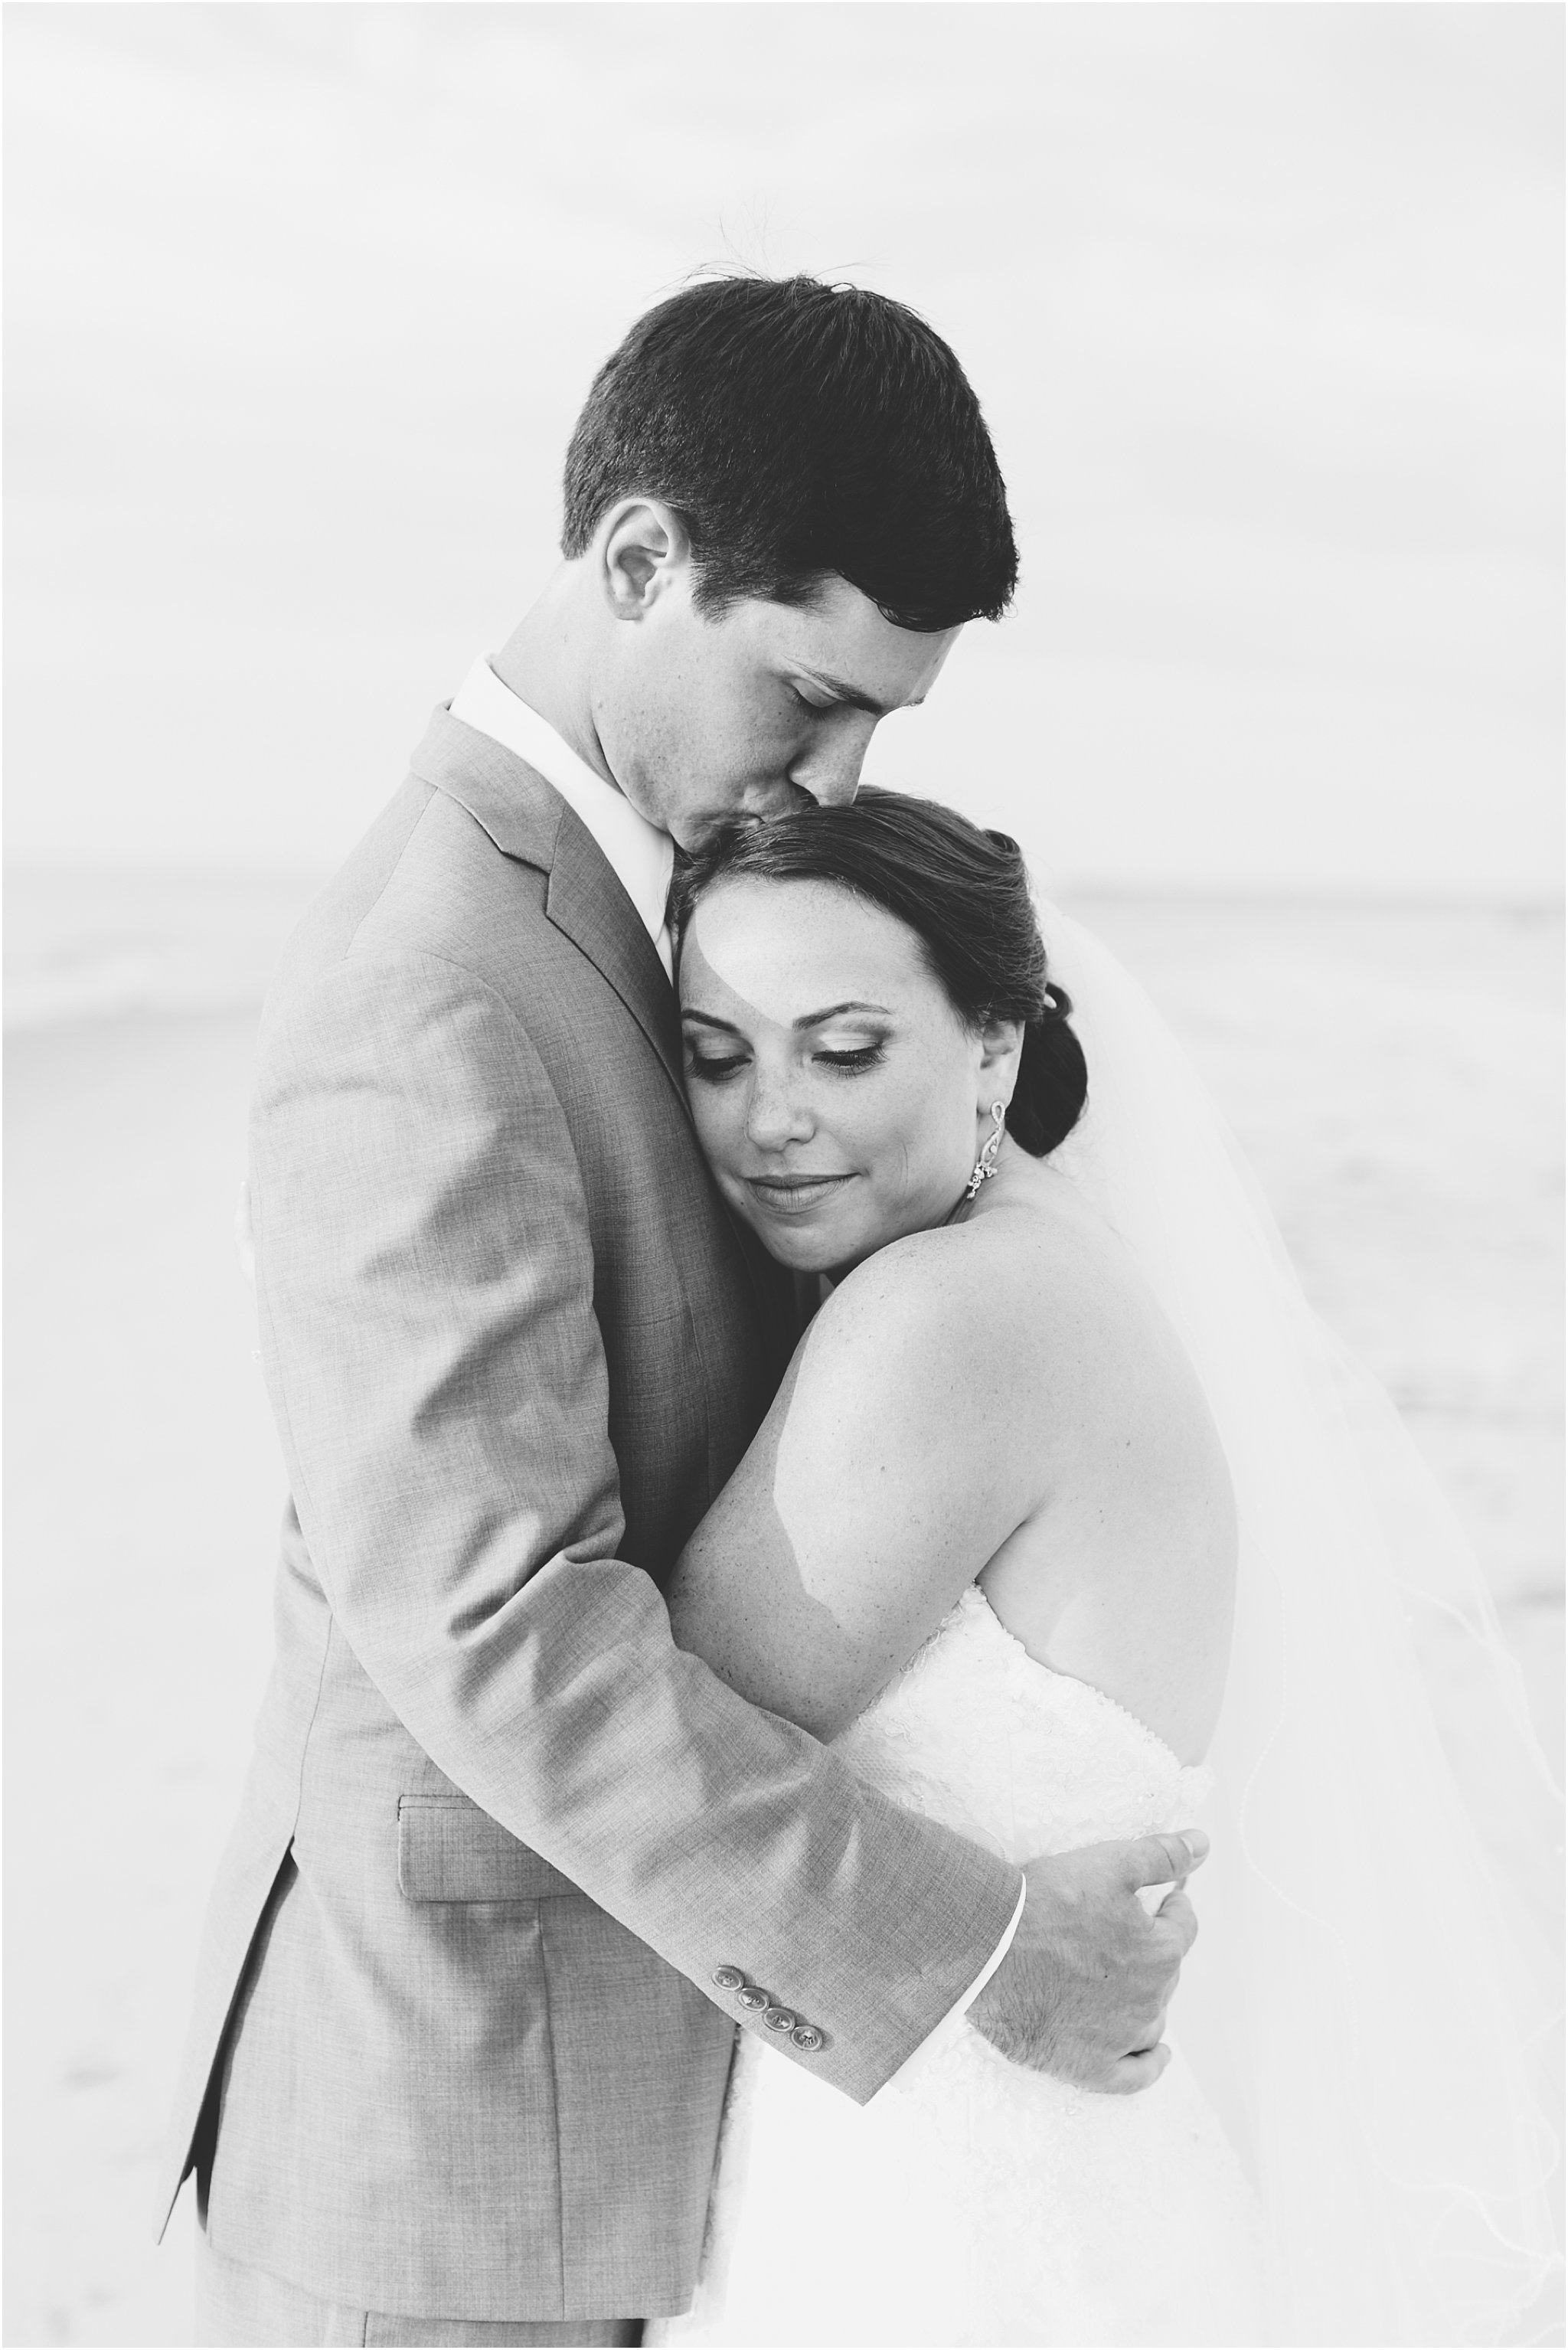 jessica_ryan_photography_wedding_photography_virginiabeach_virginia_candid_authentic_wedding_portraits_marina_shores_yacht_club_chesapeake_bay_1887